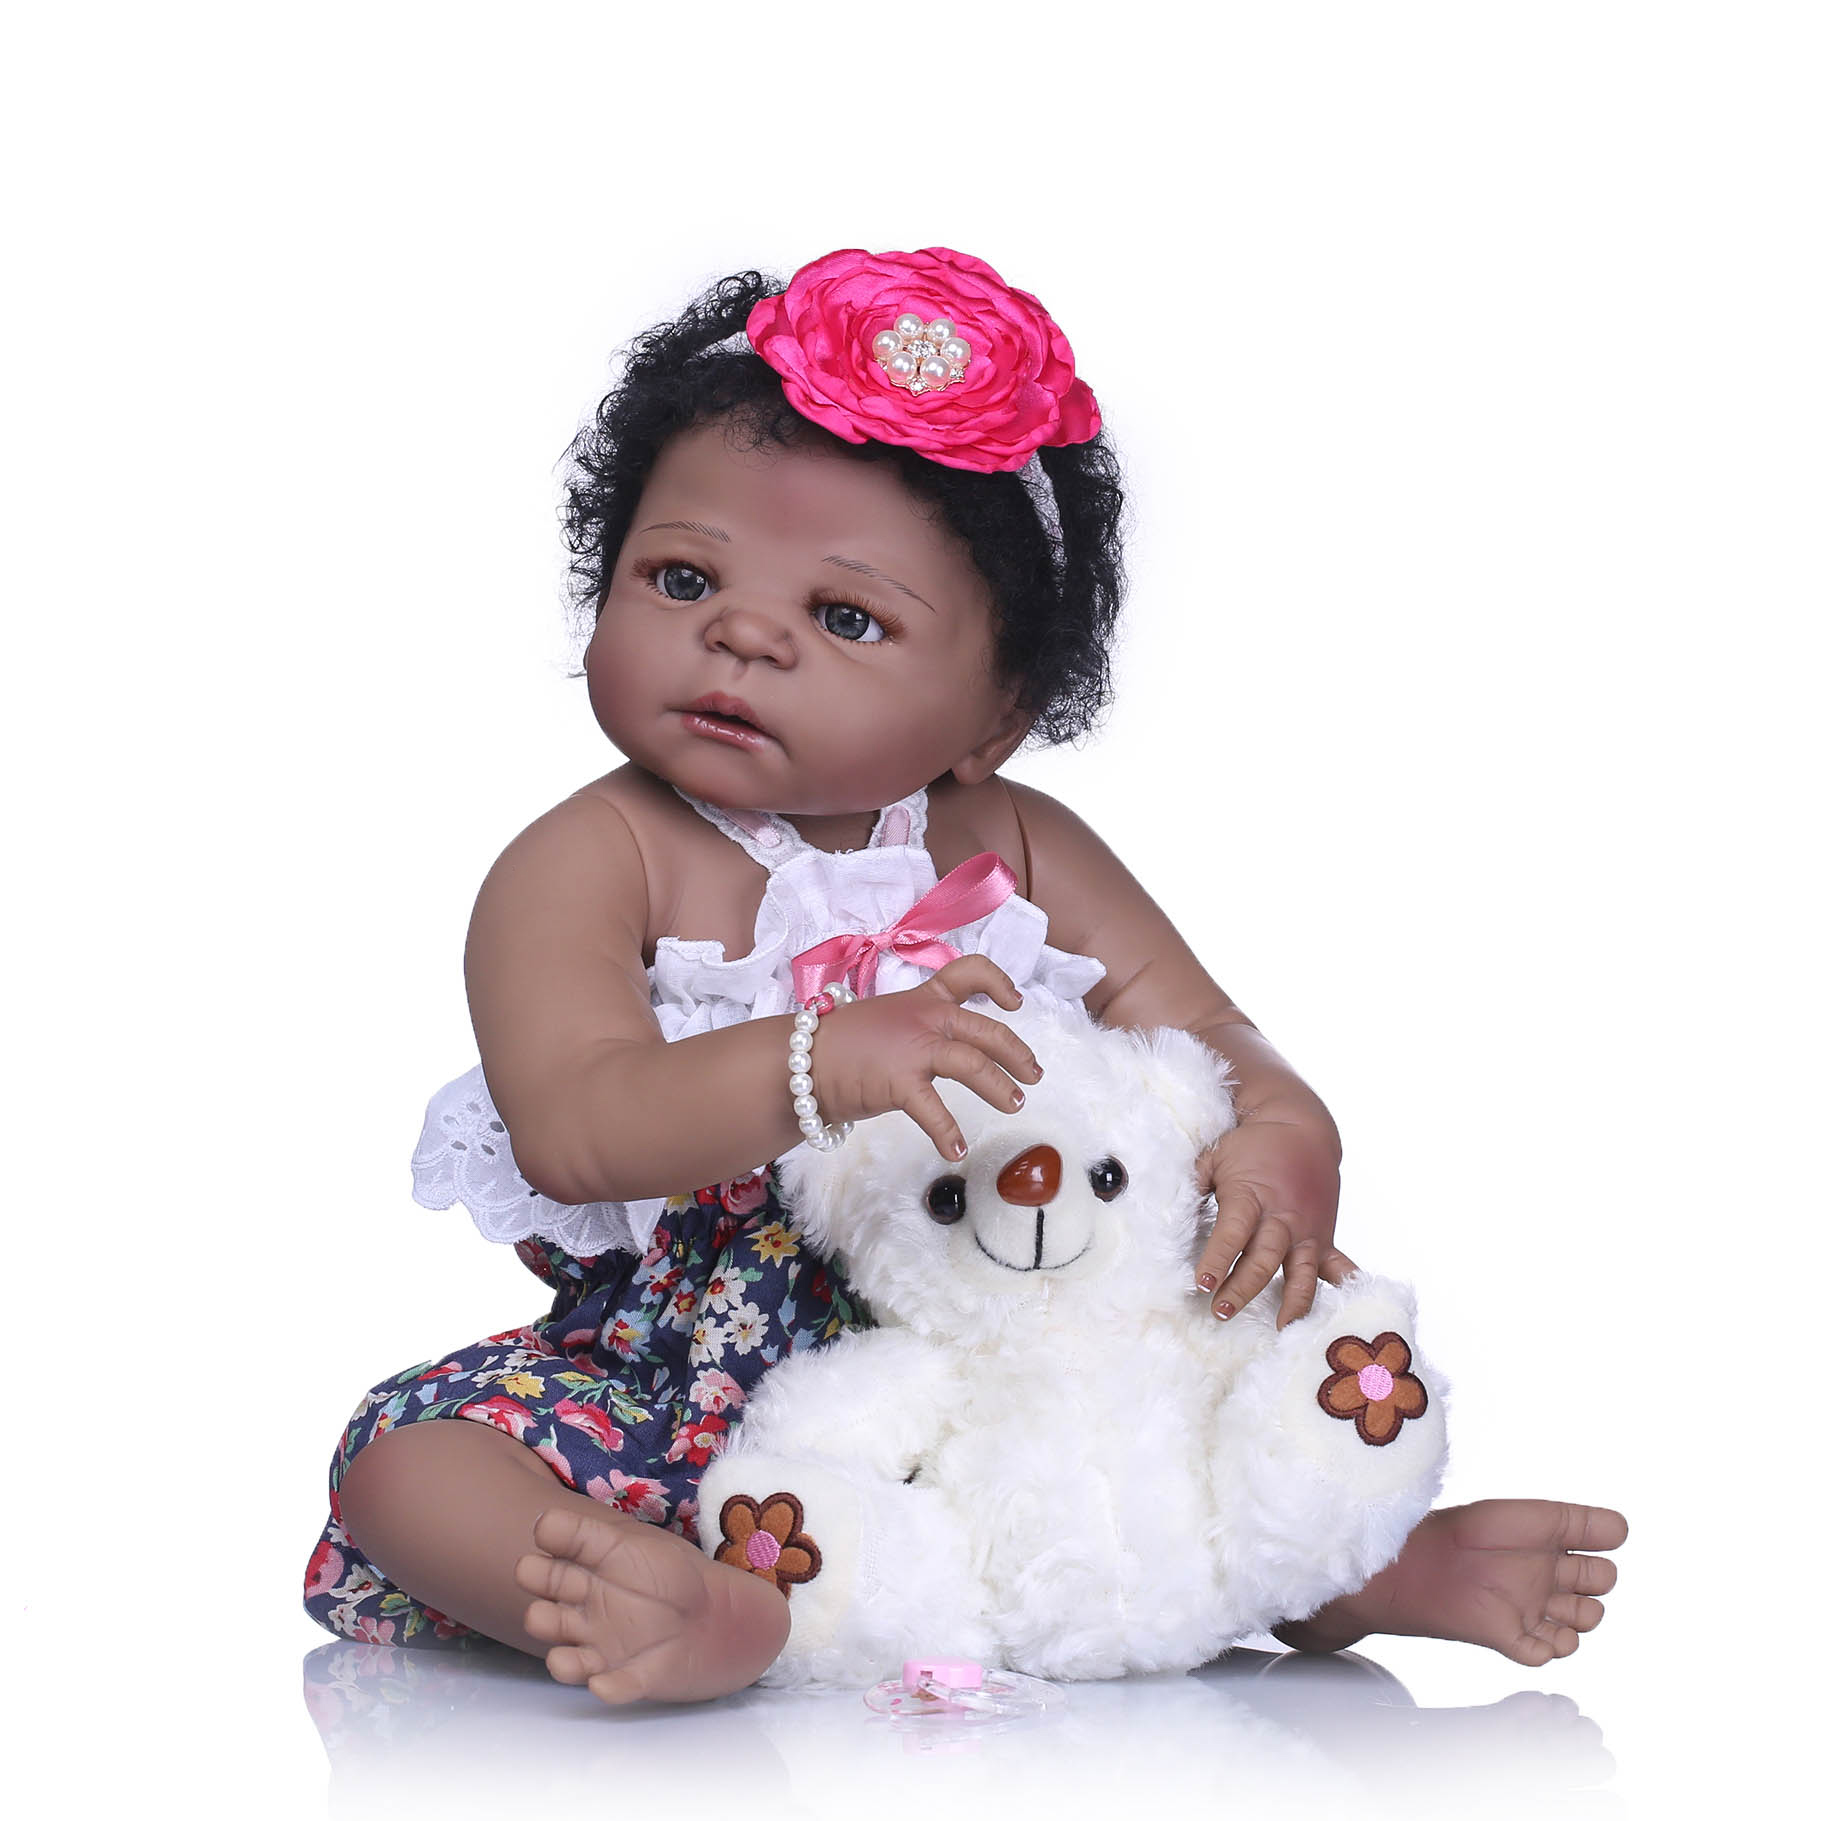 23 57cm Black Girl So Truly Realistic Baby Doll Toy Full Silicone Body Waterproof Kids Playmates Girl Doll Christmas Gifts